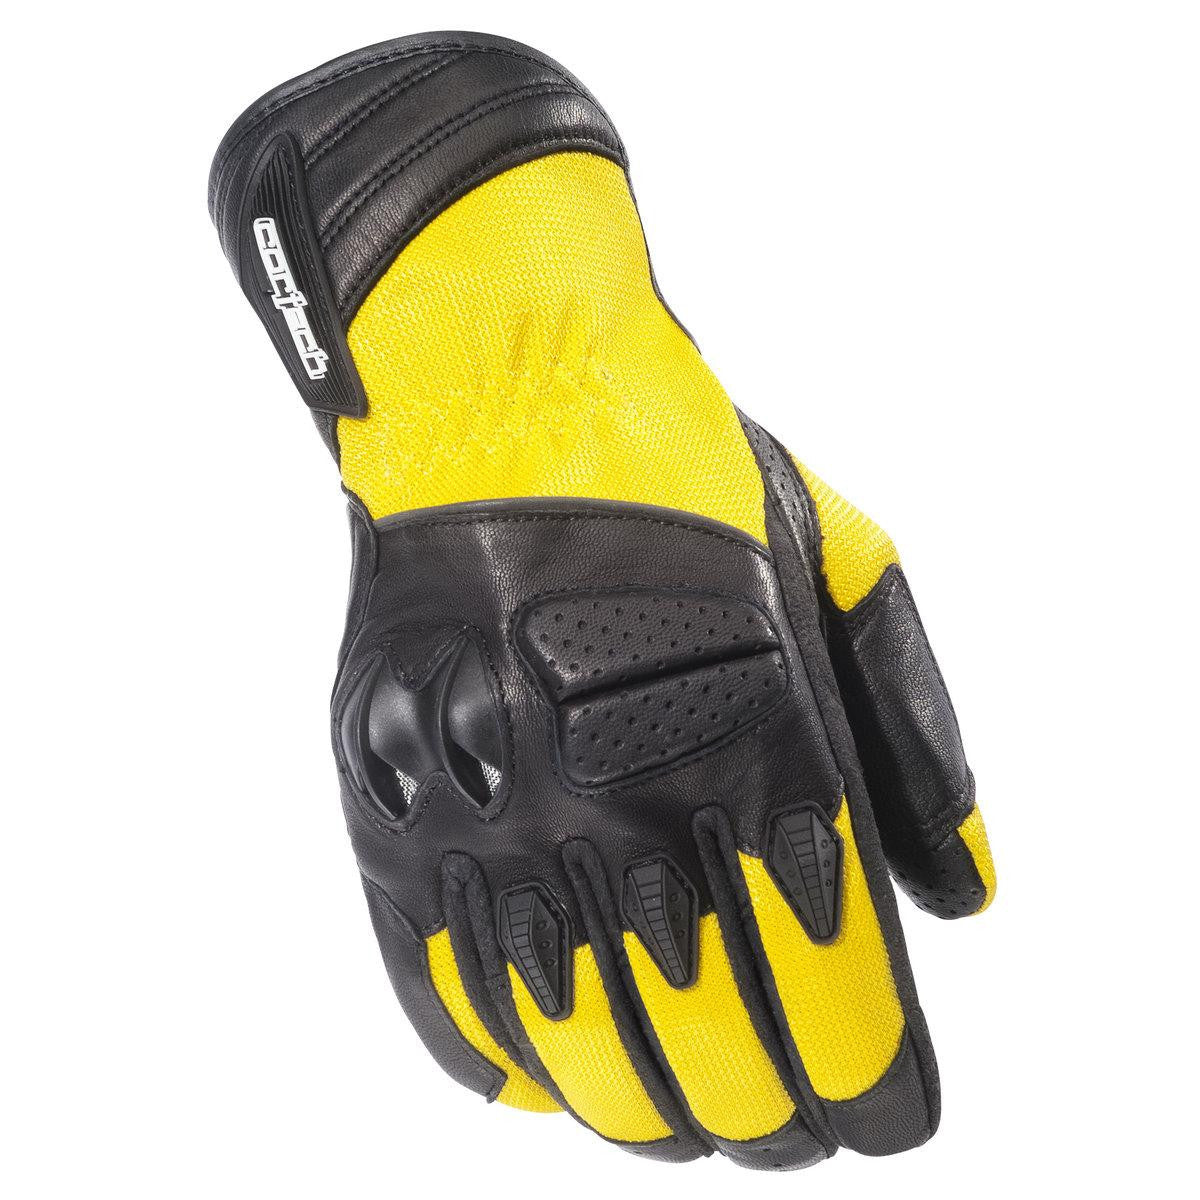 Cortech GX Air 3 Glove